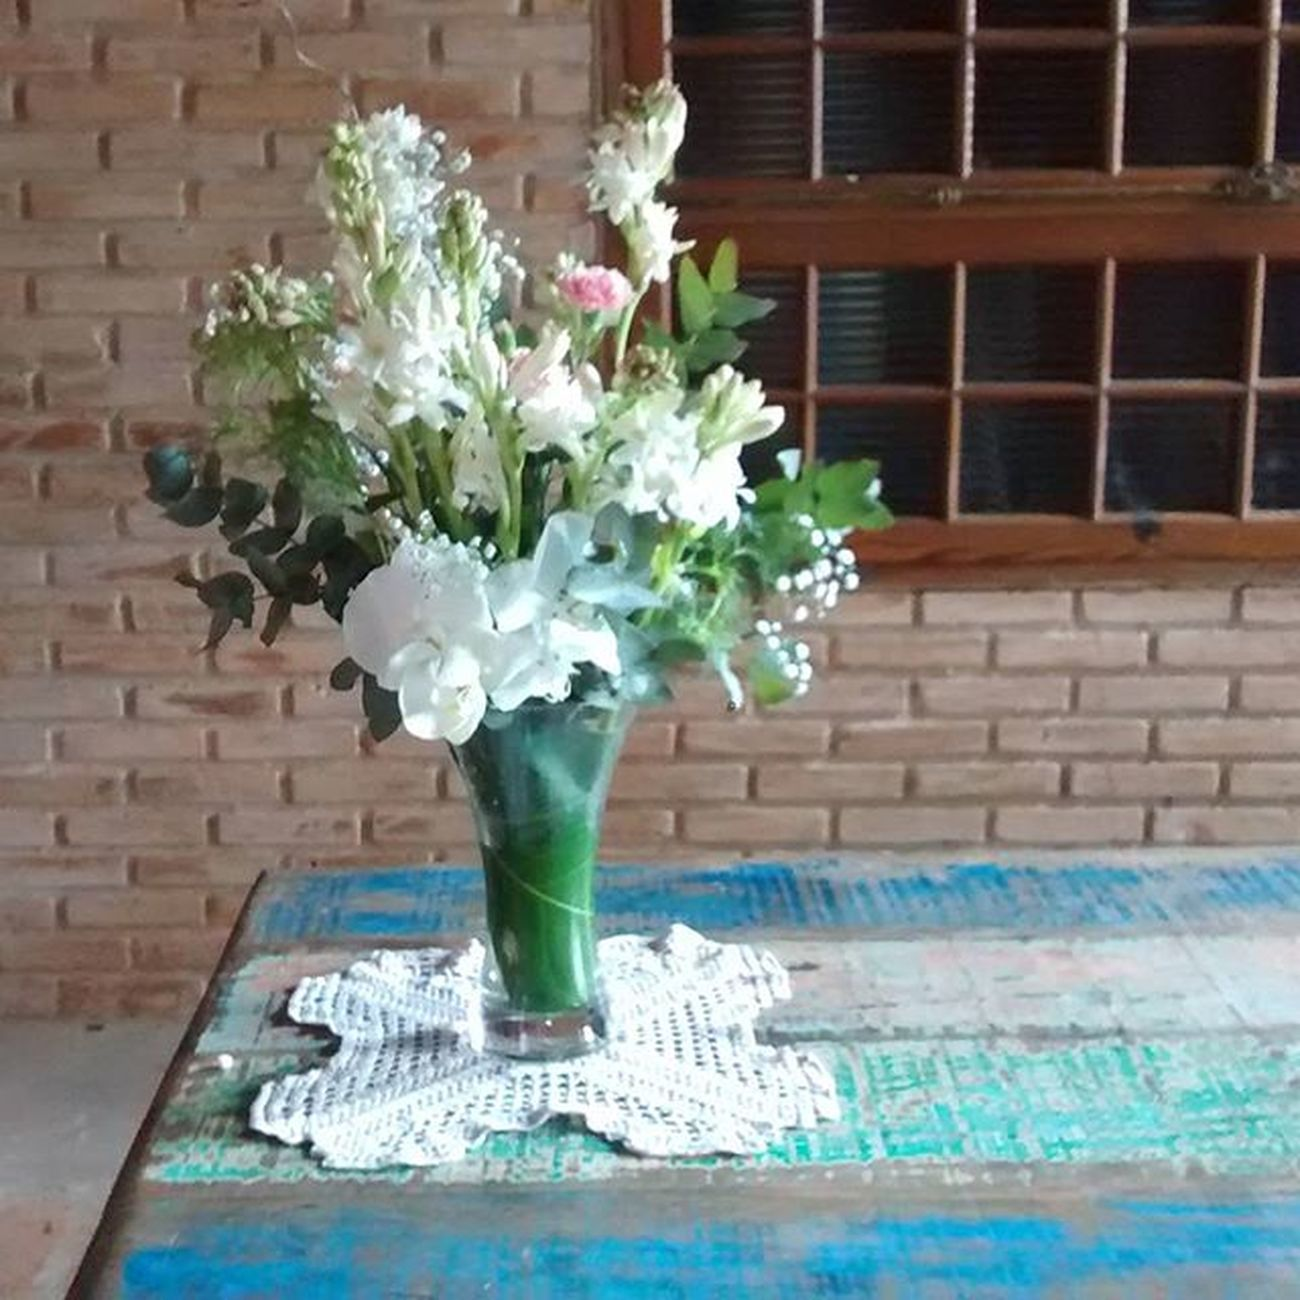 Só esperando os noivos! Deu vontade de casar??!!! Fale c a gente!!rs eu juro q fiquei! Foto Sem filtro Decoracaopersonalizada Decoracaodecerimonia Decoracaodecasamento Weddingdecor Weddingdesigner Weddingfloral Bride Ido Rusticwedding Bohowedding Folkwedding